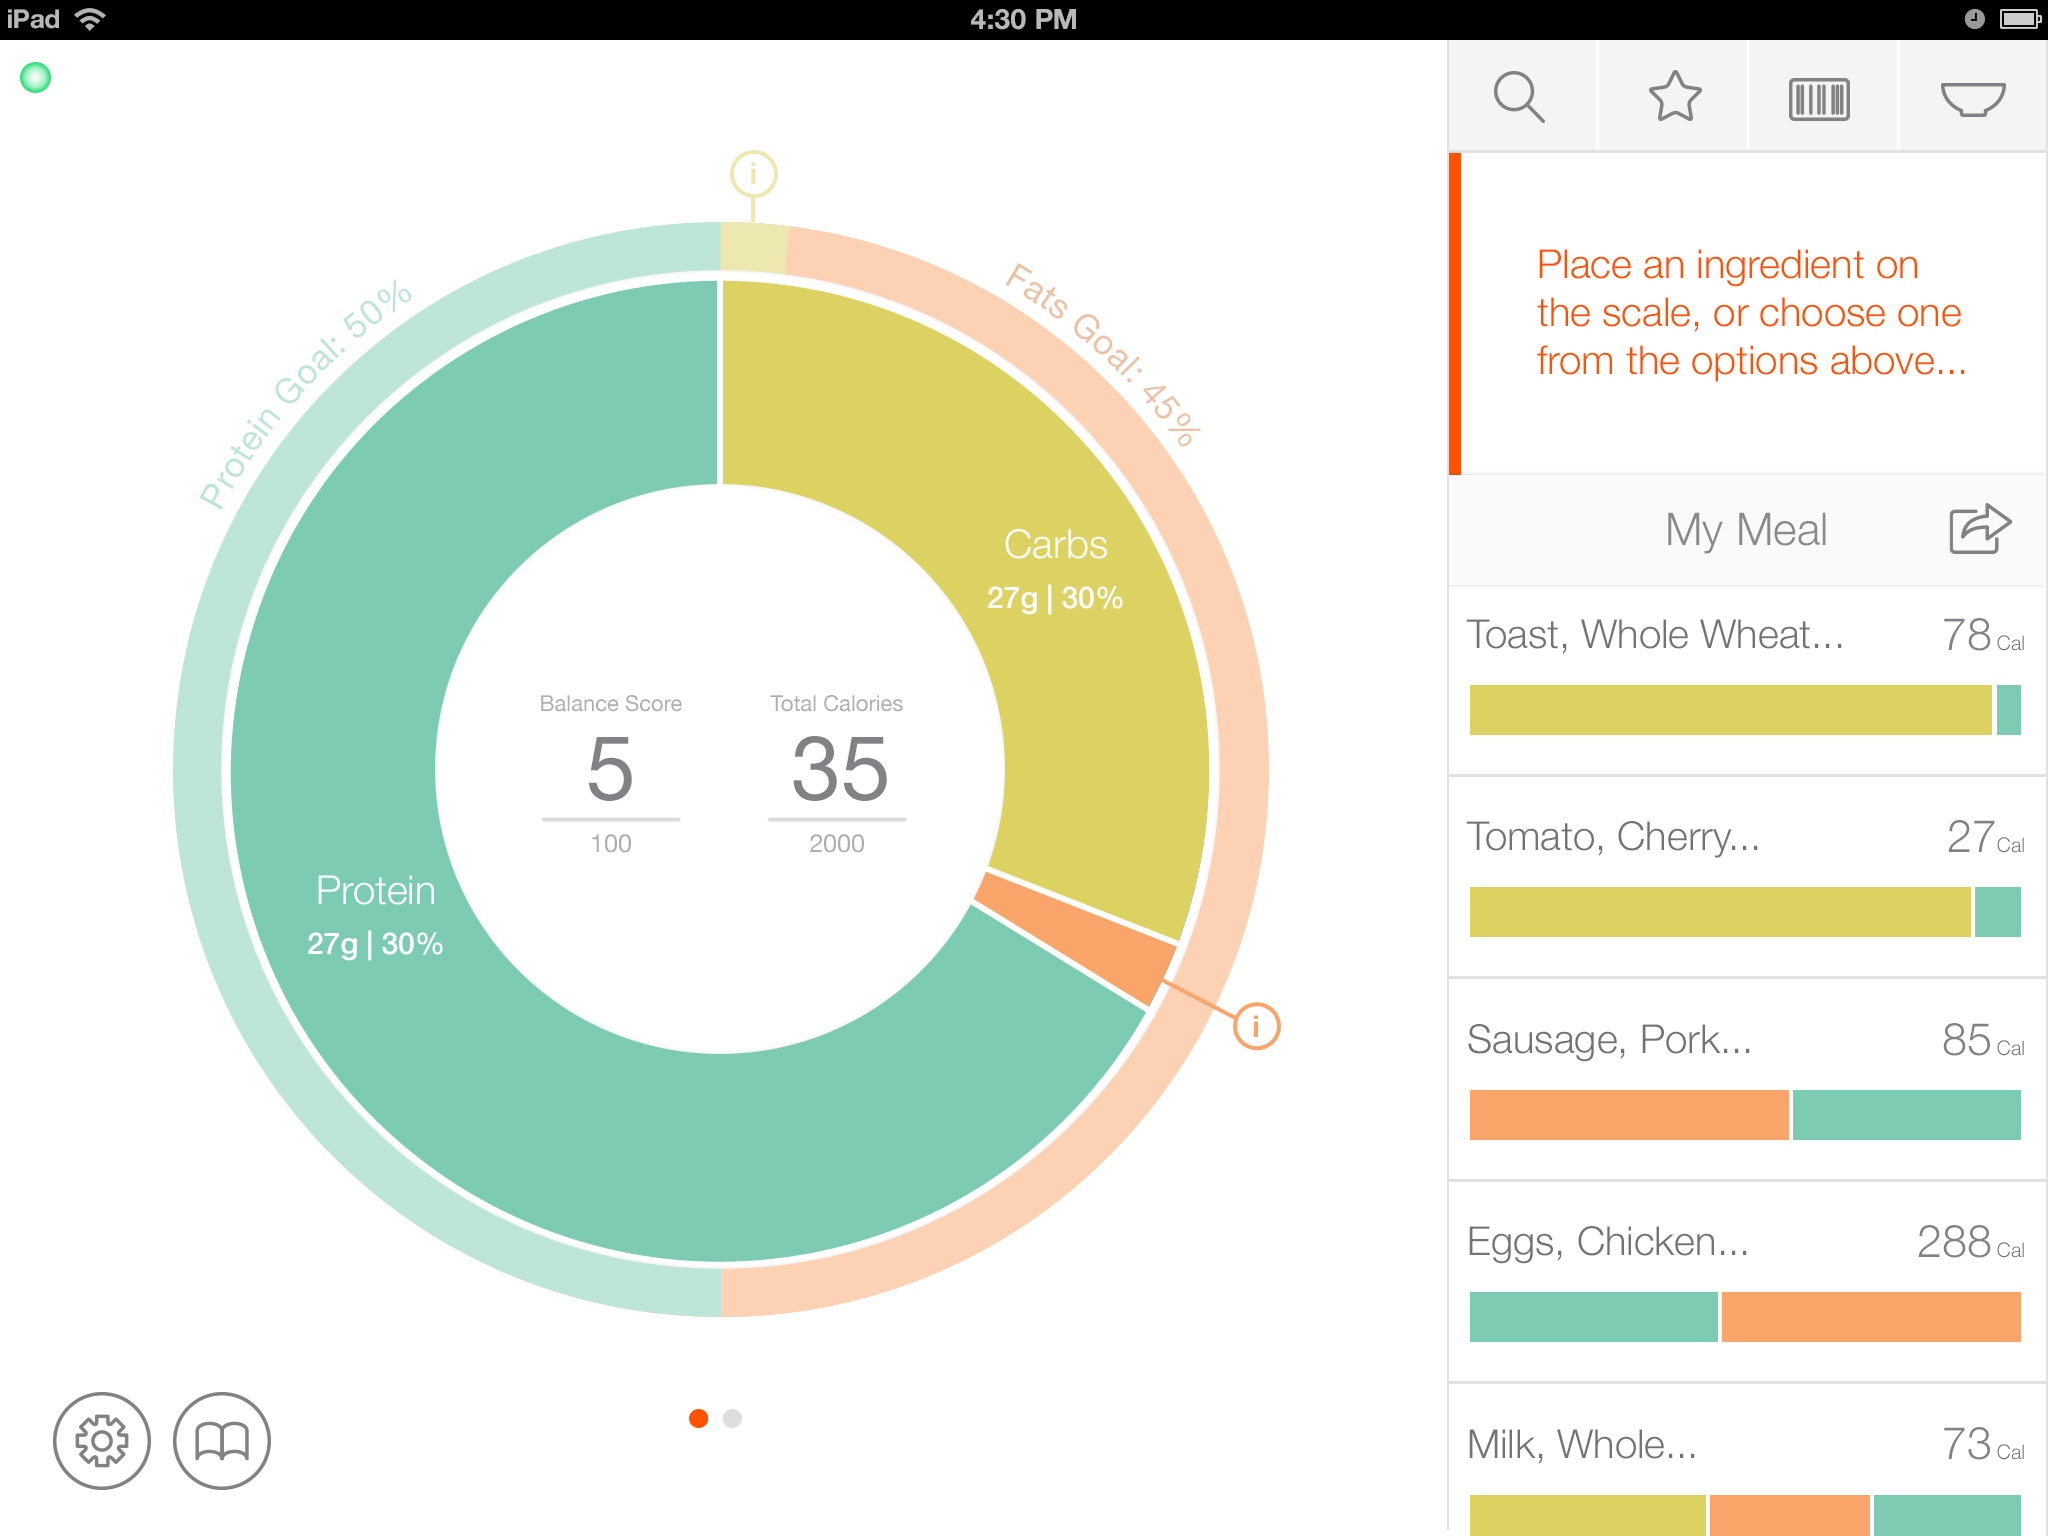 Countertop nutritional visualization view